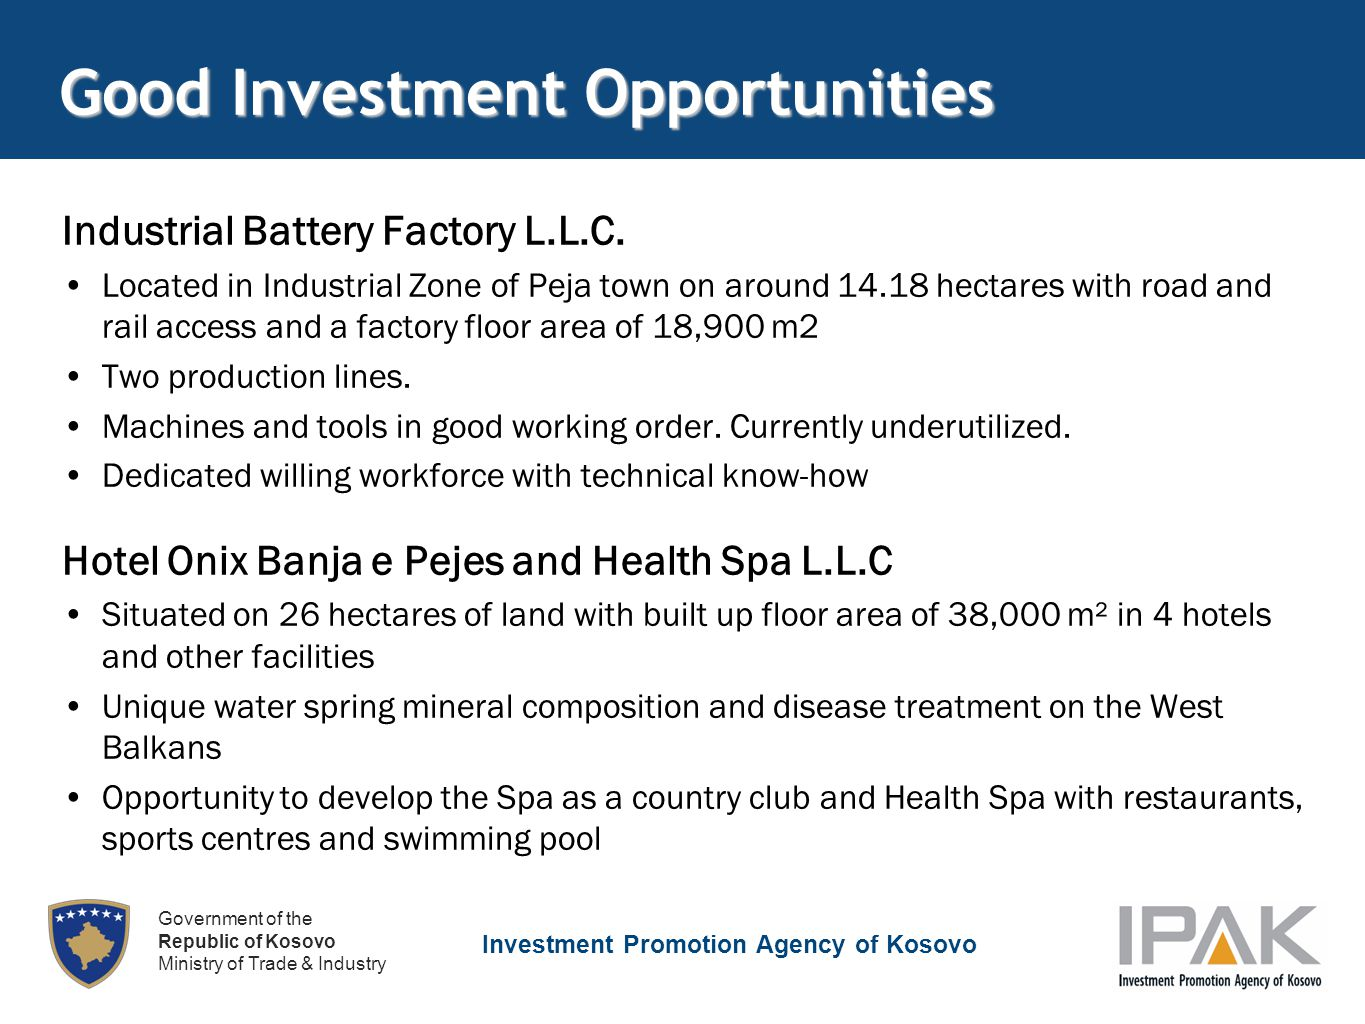 Investment Promotion Agency of Kosovo Government of the Republic of Kosovo Ministry of Trade & Industry Good Investment Opportunities Industrial Battery Factory L.L.C.